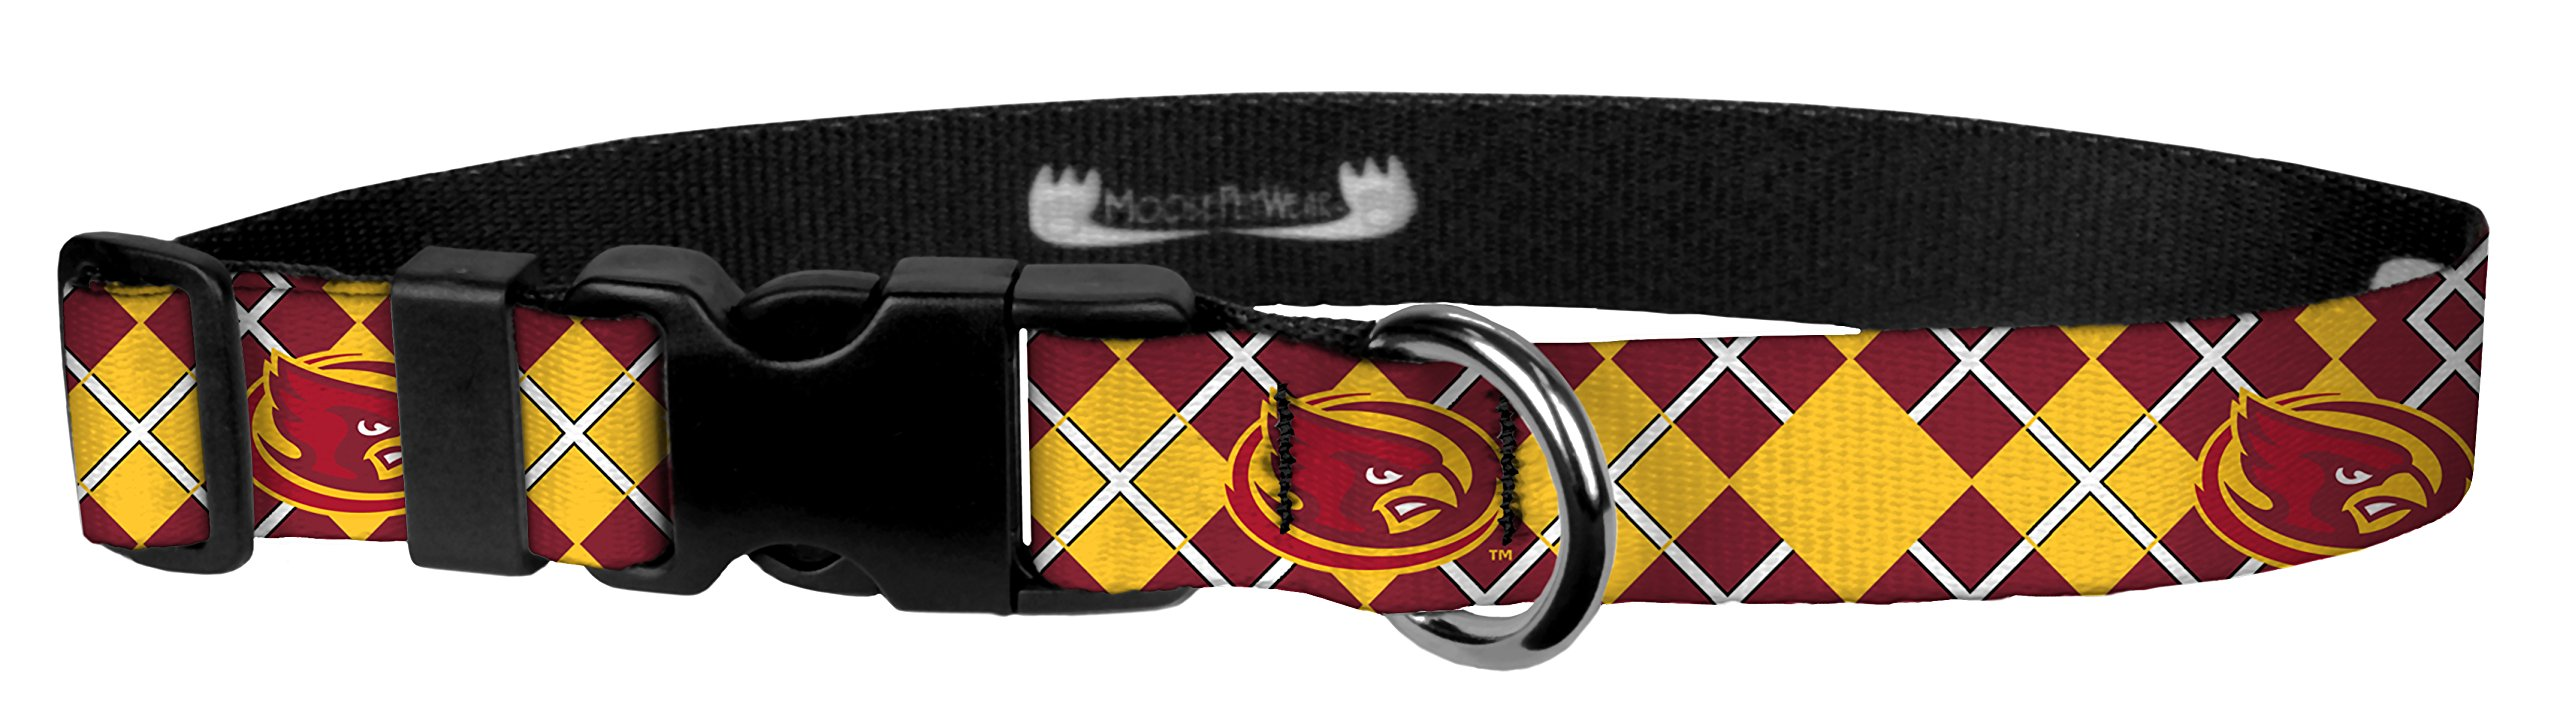 Moose Pet Wear Dog Collar – Iowa State University Adjustable Pet Collars, Made in the USA – 1 Inch Wide, Extra Large, Argyle